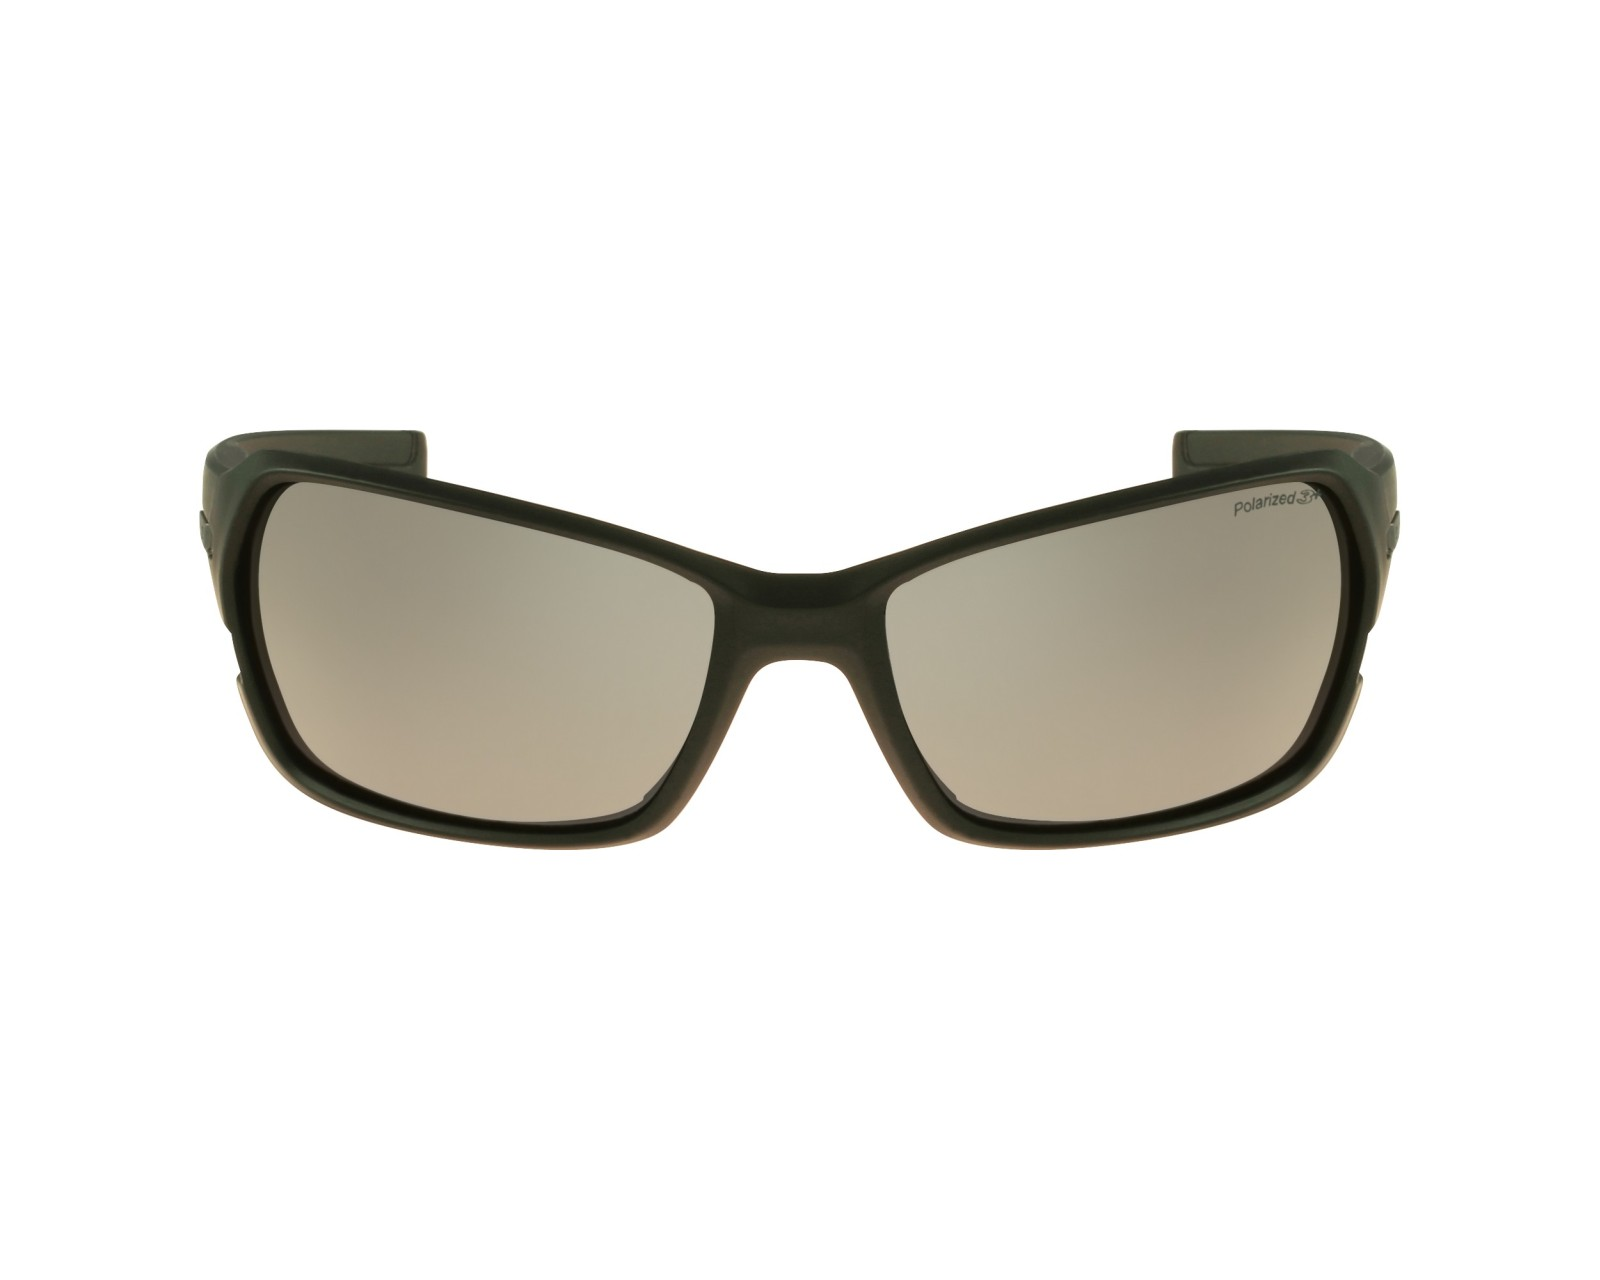 c91b4c24e95c Polarized. Sunglasses Julbo J474 9114 - Black profile view